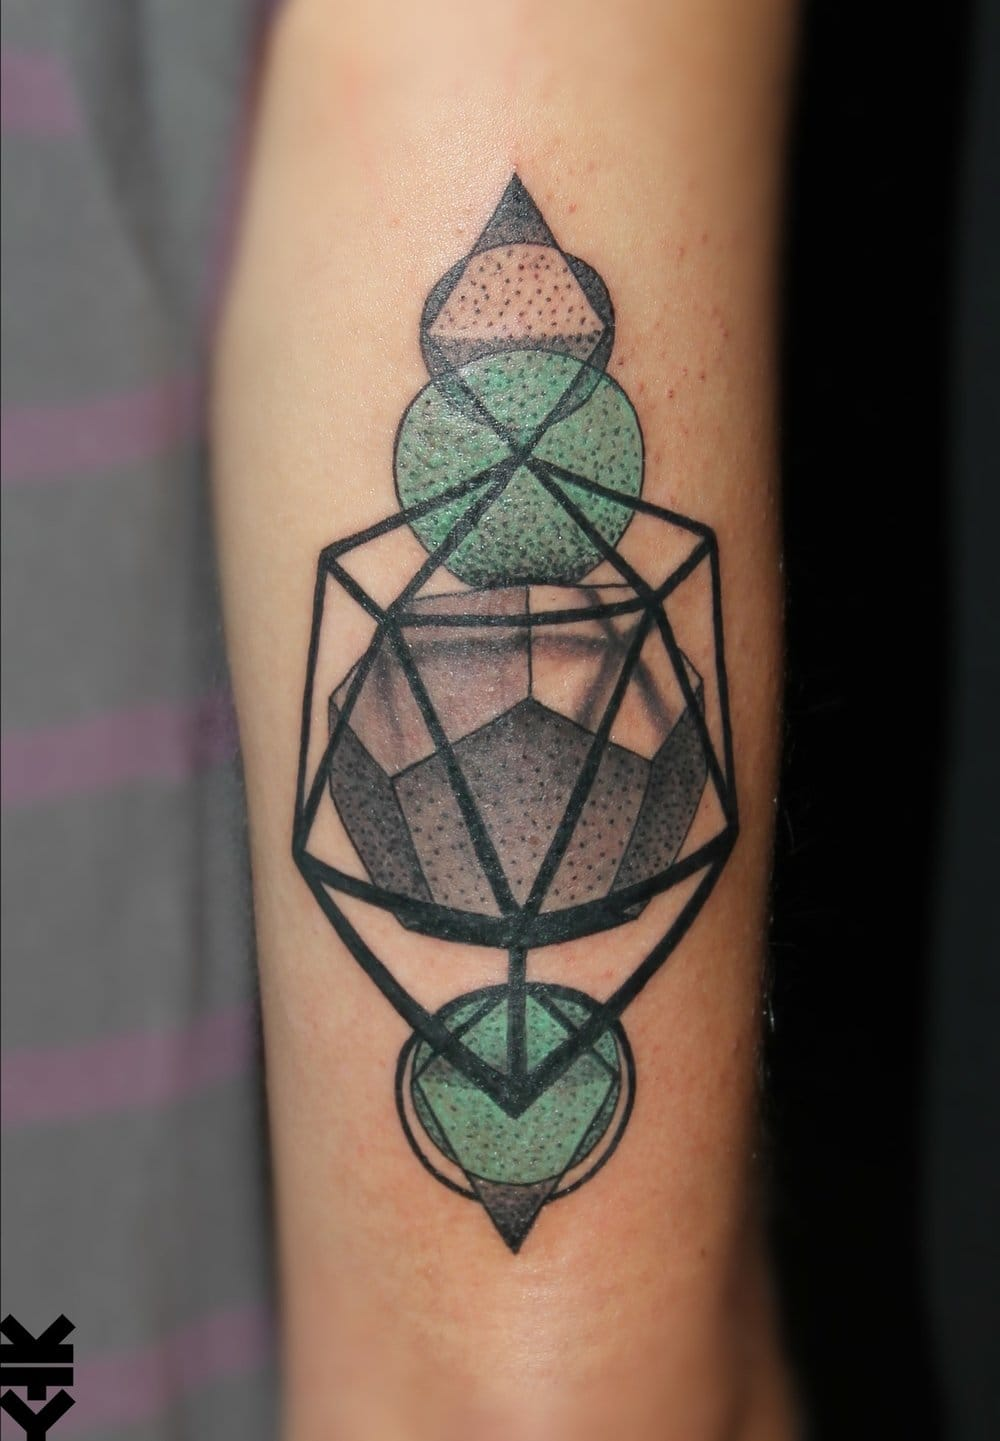 Cool dodecahedron tattoo by Kreatyves.